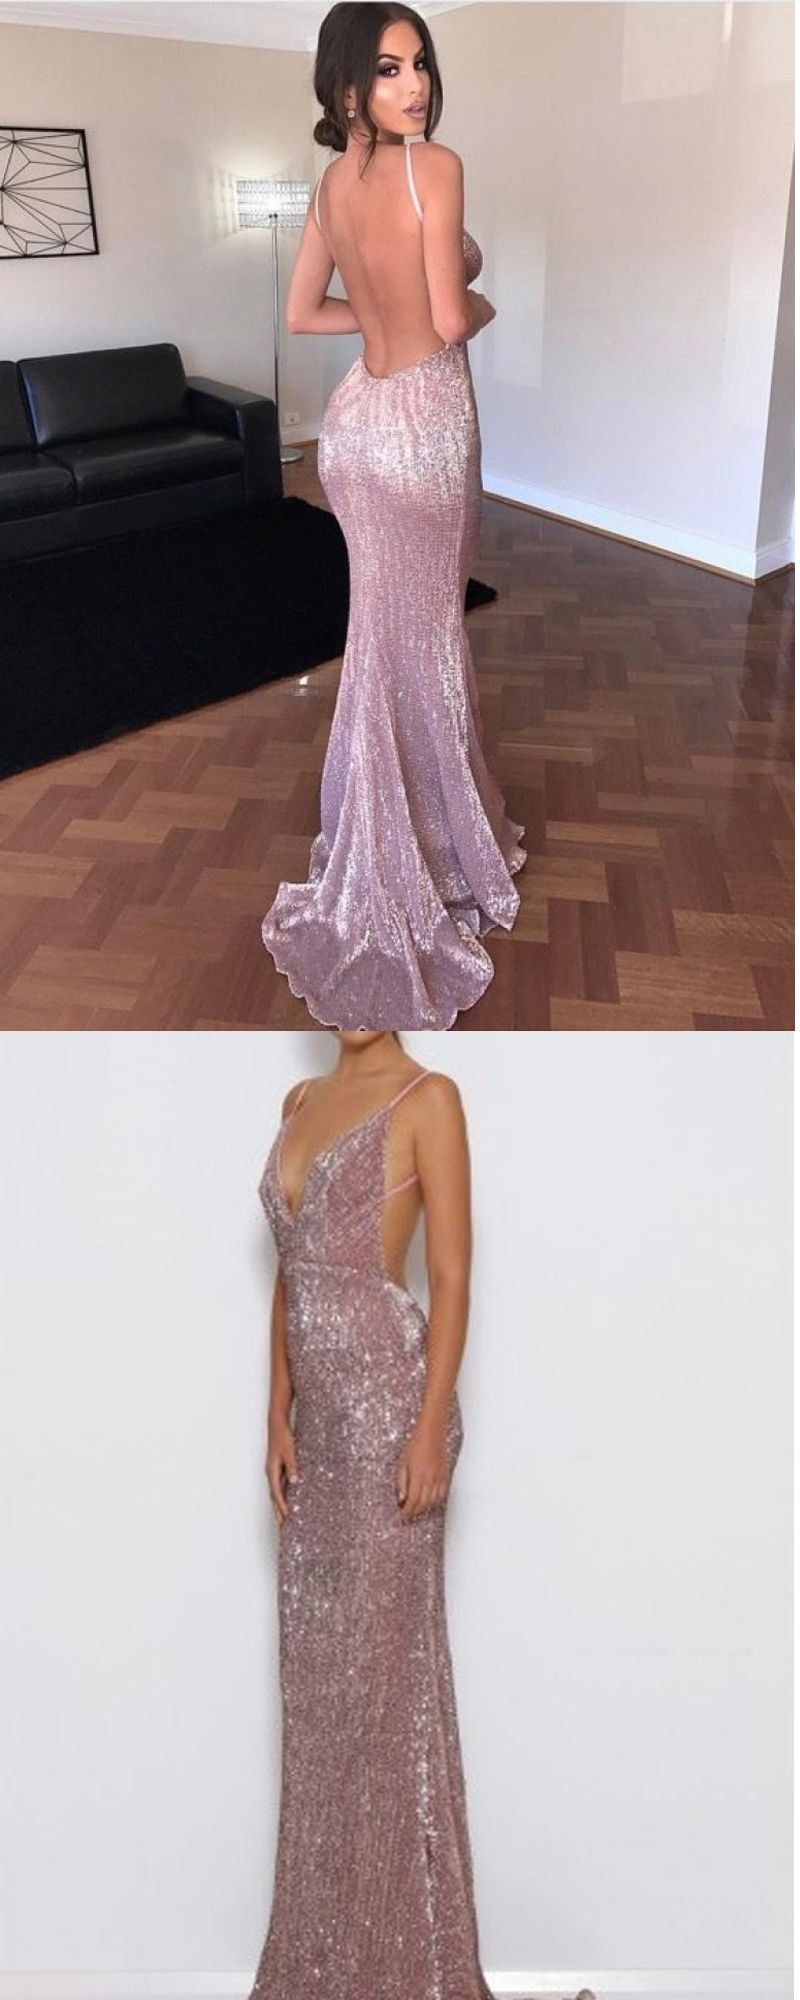 Spaghetti straps backless sequined sweep train prom dress open back